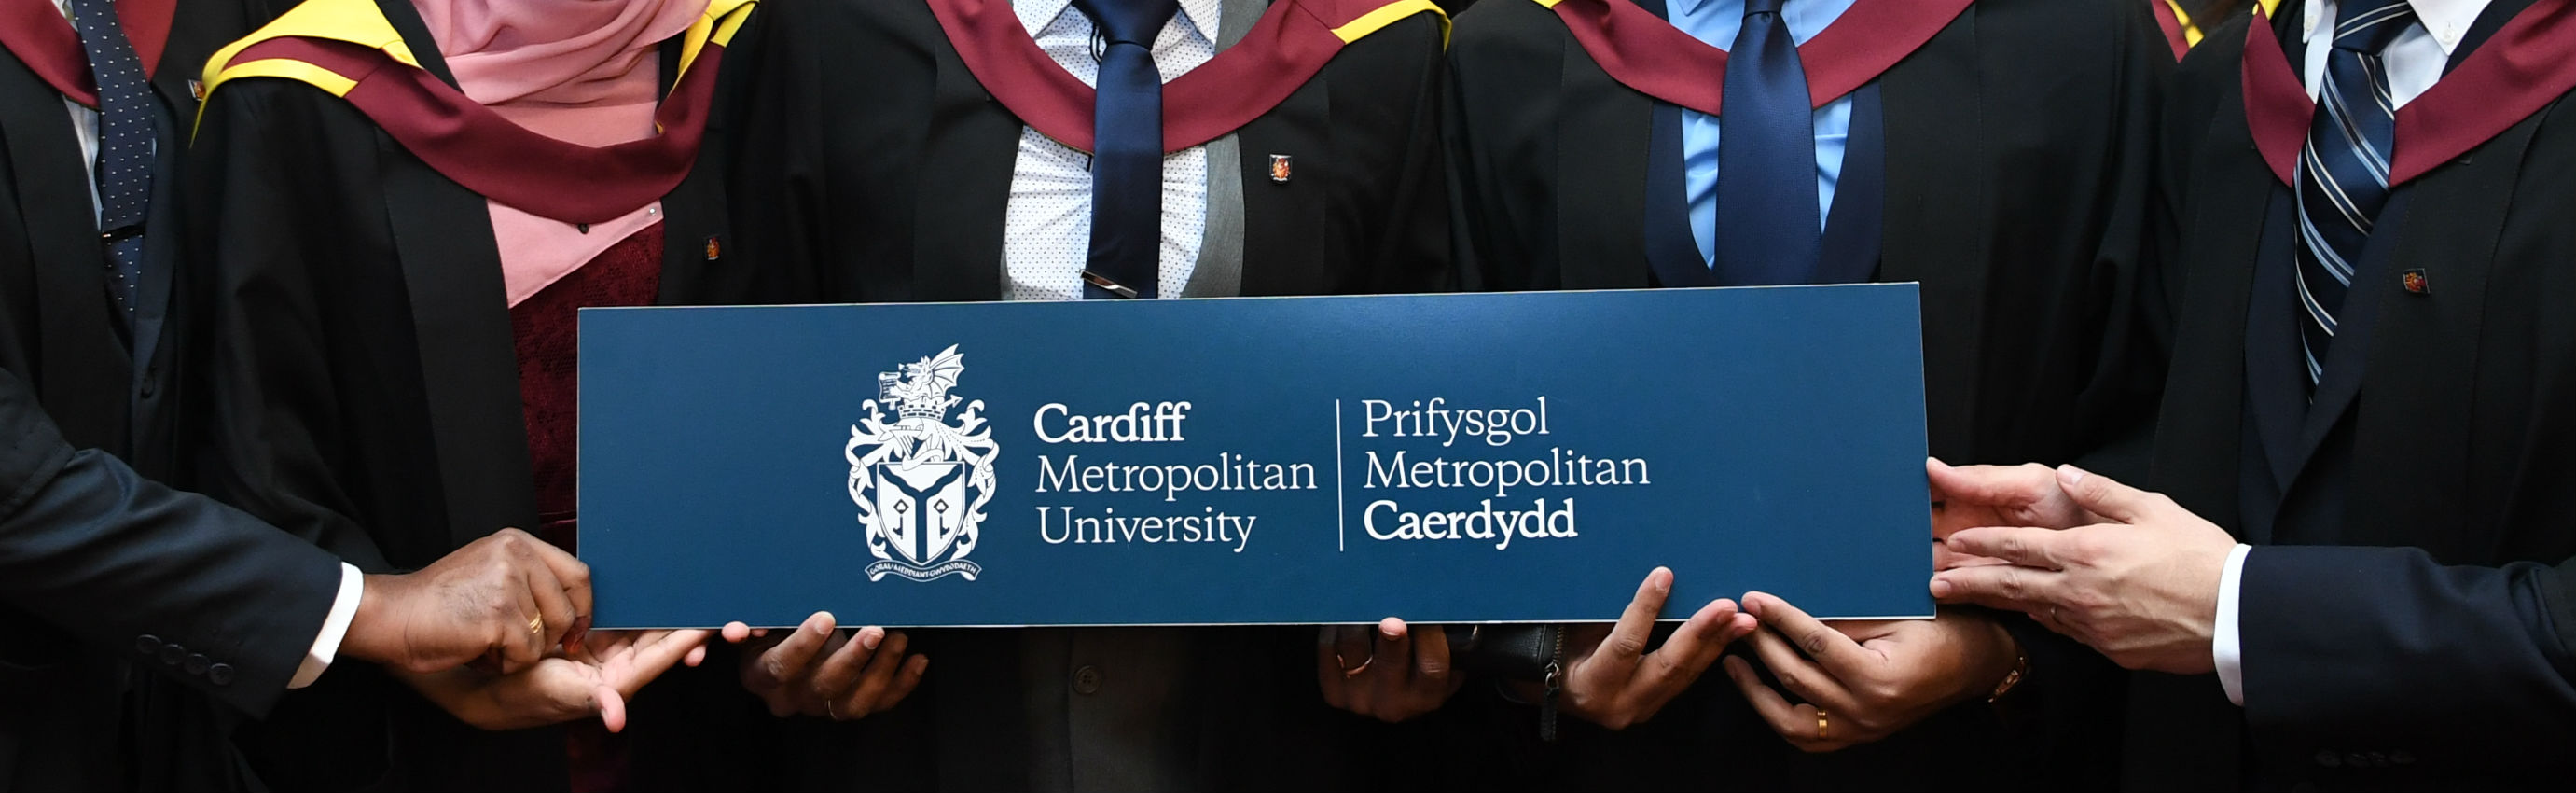 Graduates holding a sign with the university logo